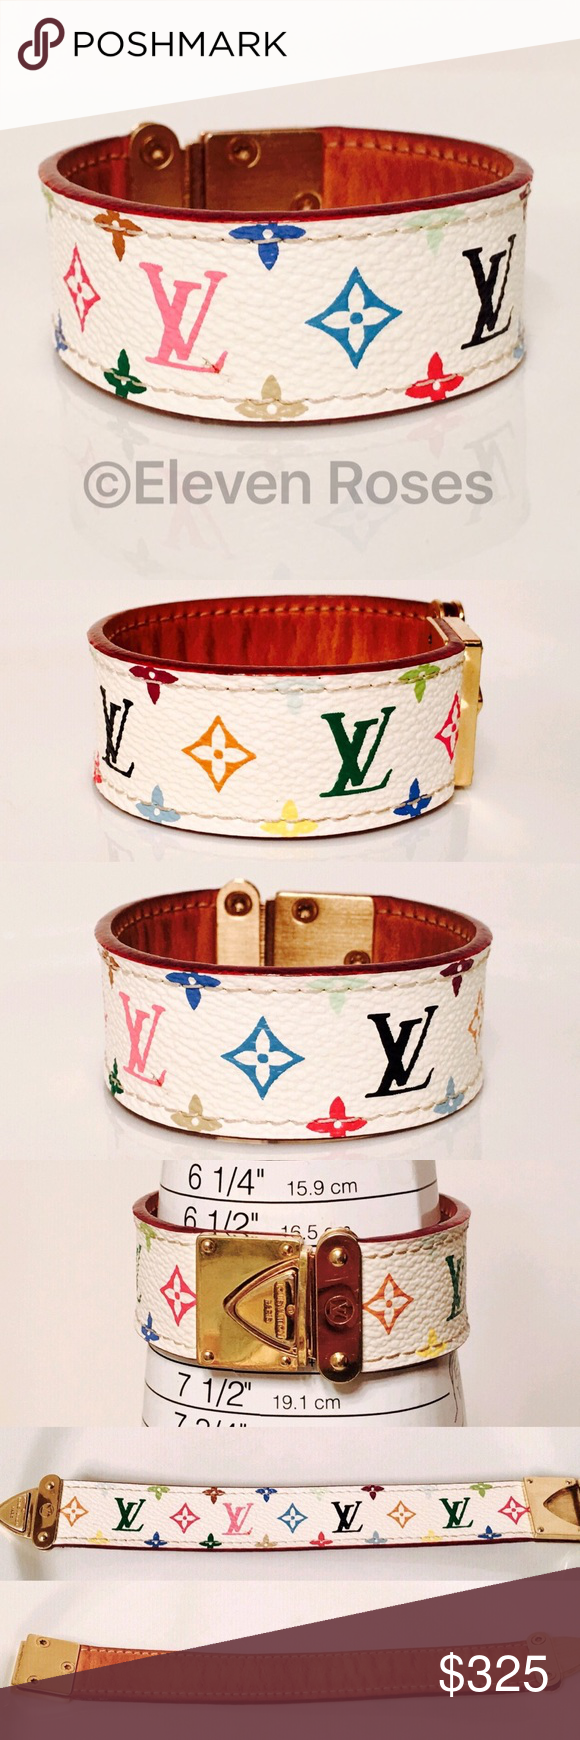 Louis Vuitton White Multi-Color LV Koala Bracelet Louis Vuitton White Multi-Color LV Monogram Wide Cuff Koala Bracelet - Vachetta Leather & Canvas - Gold Tone Buckle & Hardware - Dust Bag Included - Has Been Professionally Authenticated - Preowned / Preloved   Slight Signs Of Having Been Worn, As Shown Louis Vuitton Jewelry Bracelets